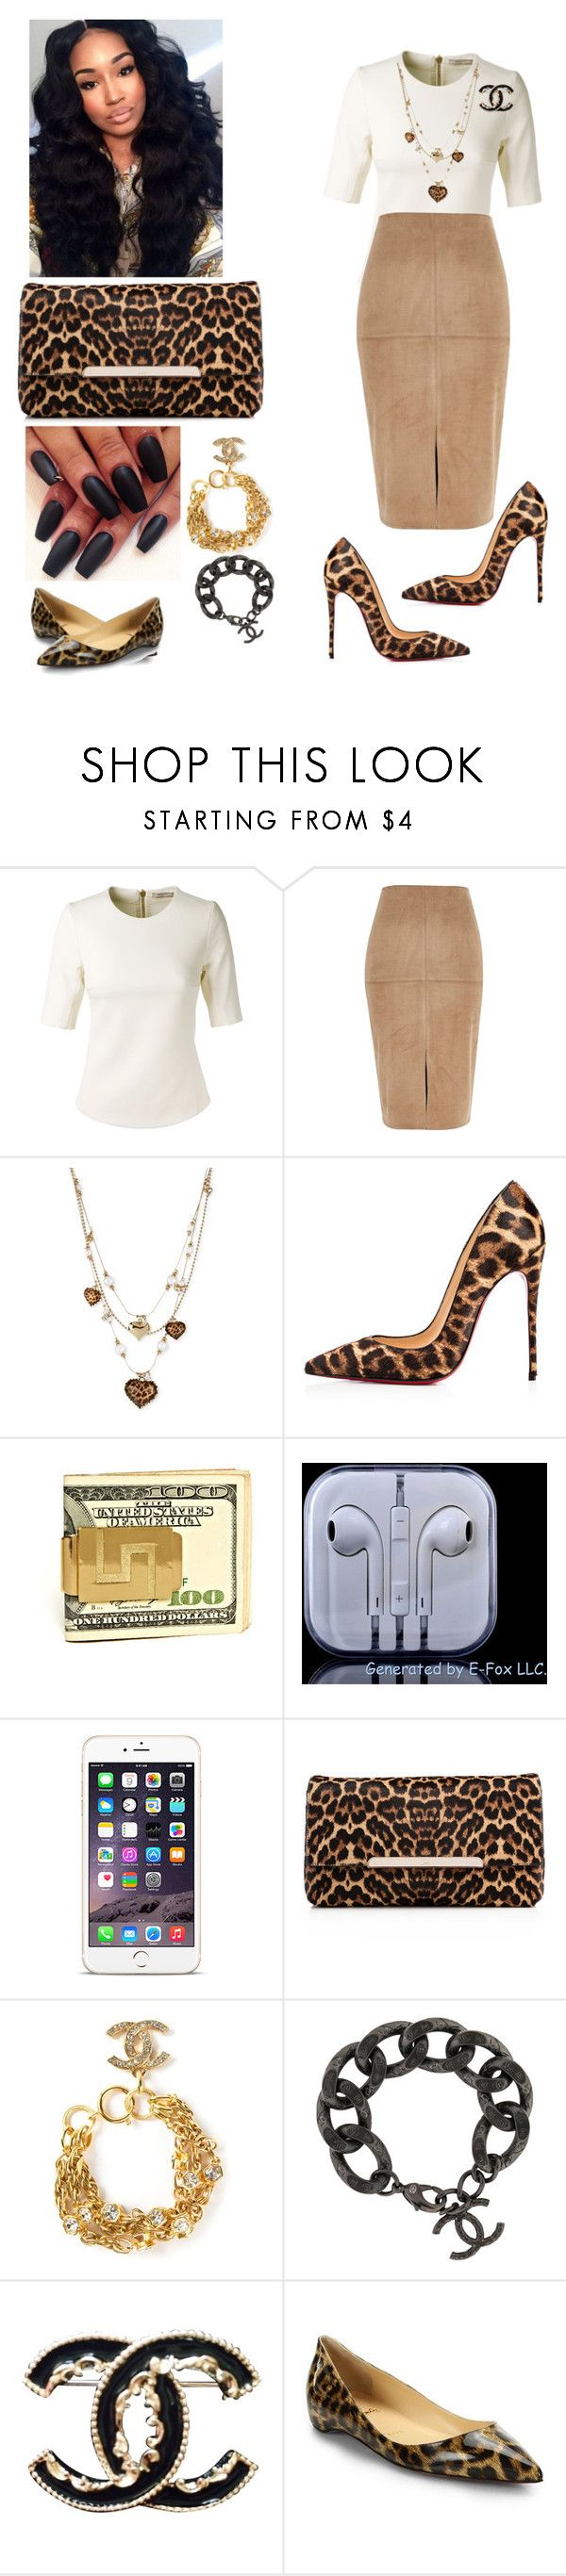 """""""Youth Service"""" by cogic-fashion ❤ liked on Polyvore featuring Bouchra Jarrar, River Island, Betsey Johnson, Christian Louboutin and Chanel"""